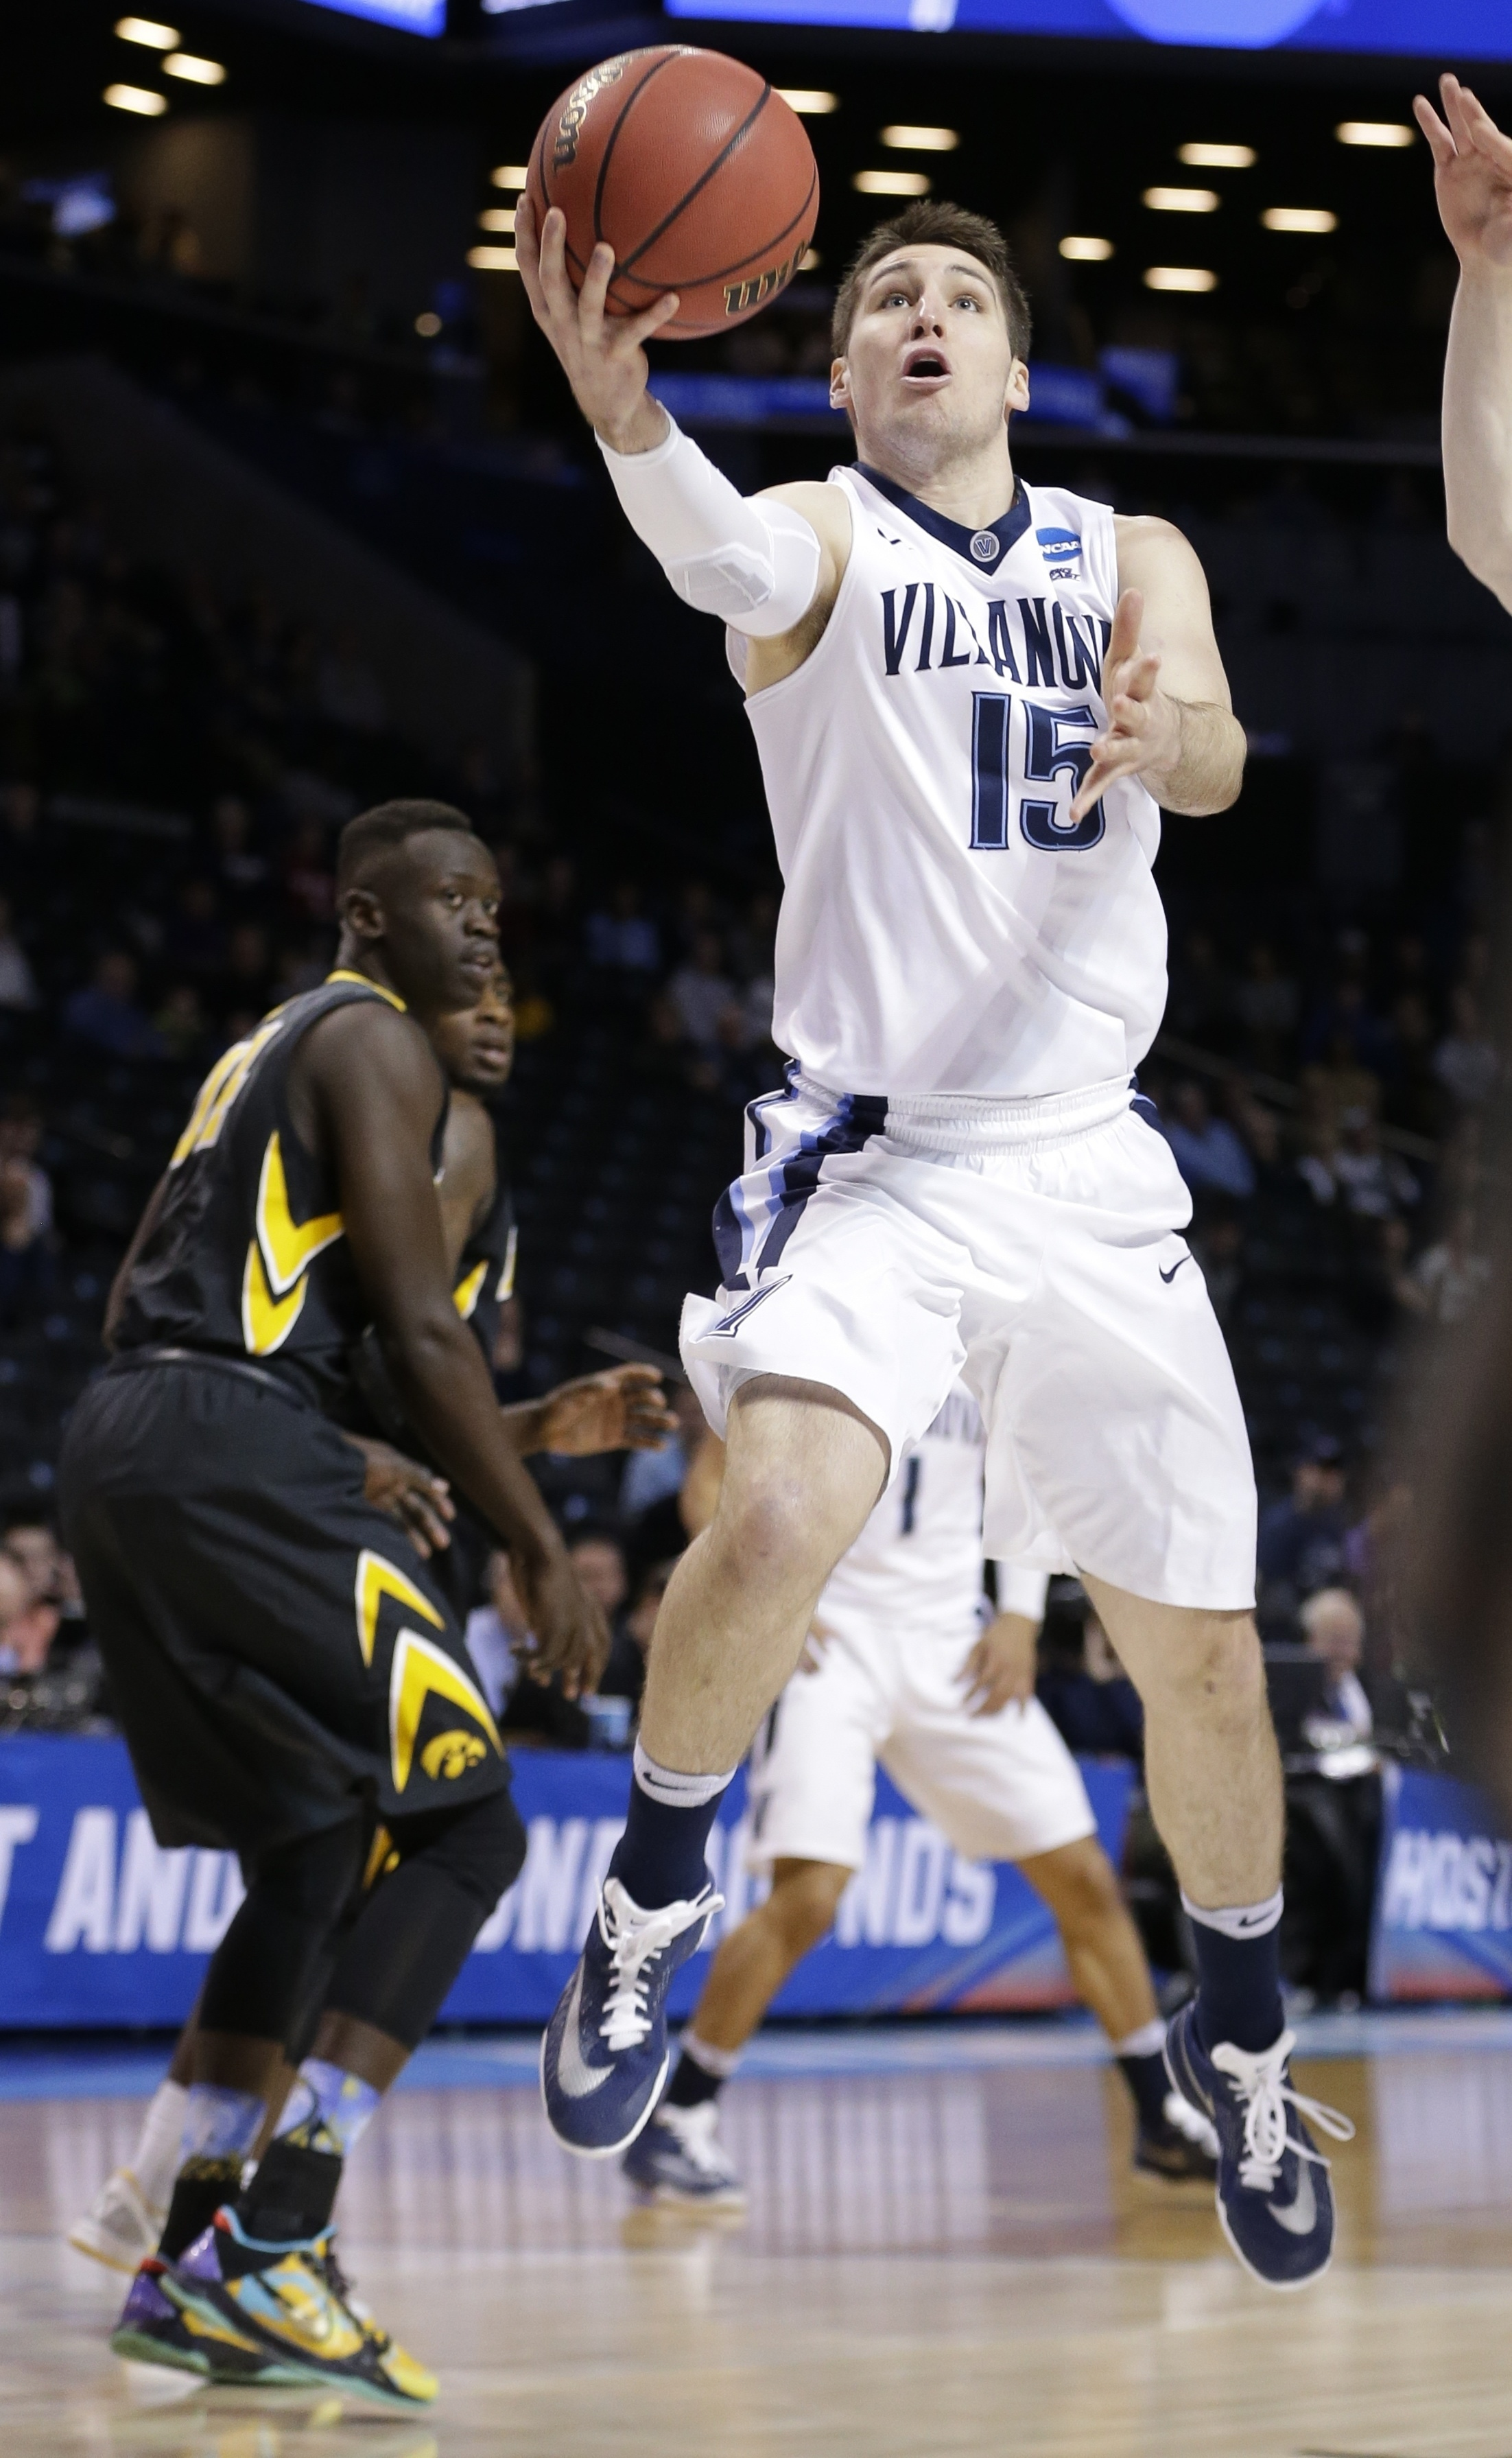 Villanova's Ryan Arcidiacono (15) drives past Iowa's Peter Jok (14) during the first half of a second-round men's college basketball game in the NCAA Tournament, Sunday, March 20, 2016, in New York. (AP Photo/Frank Franklin II)